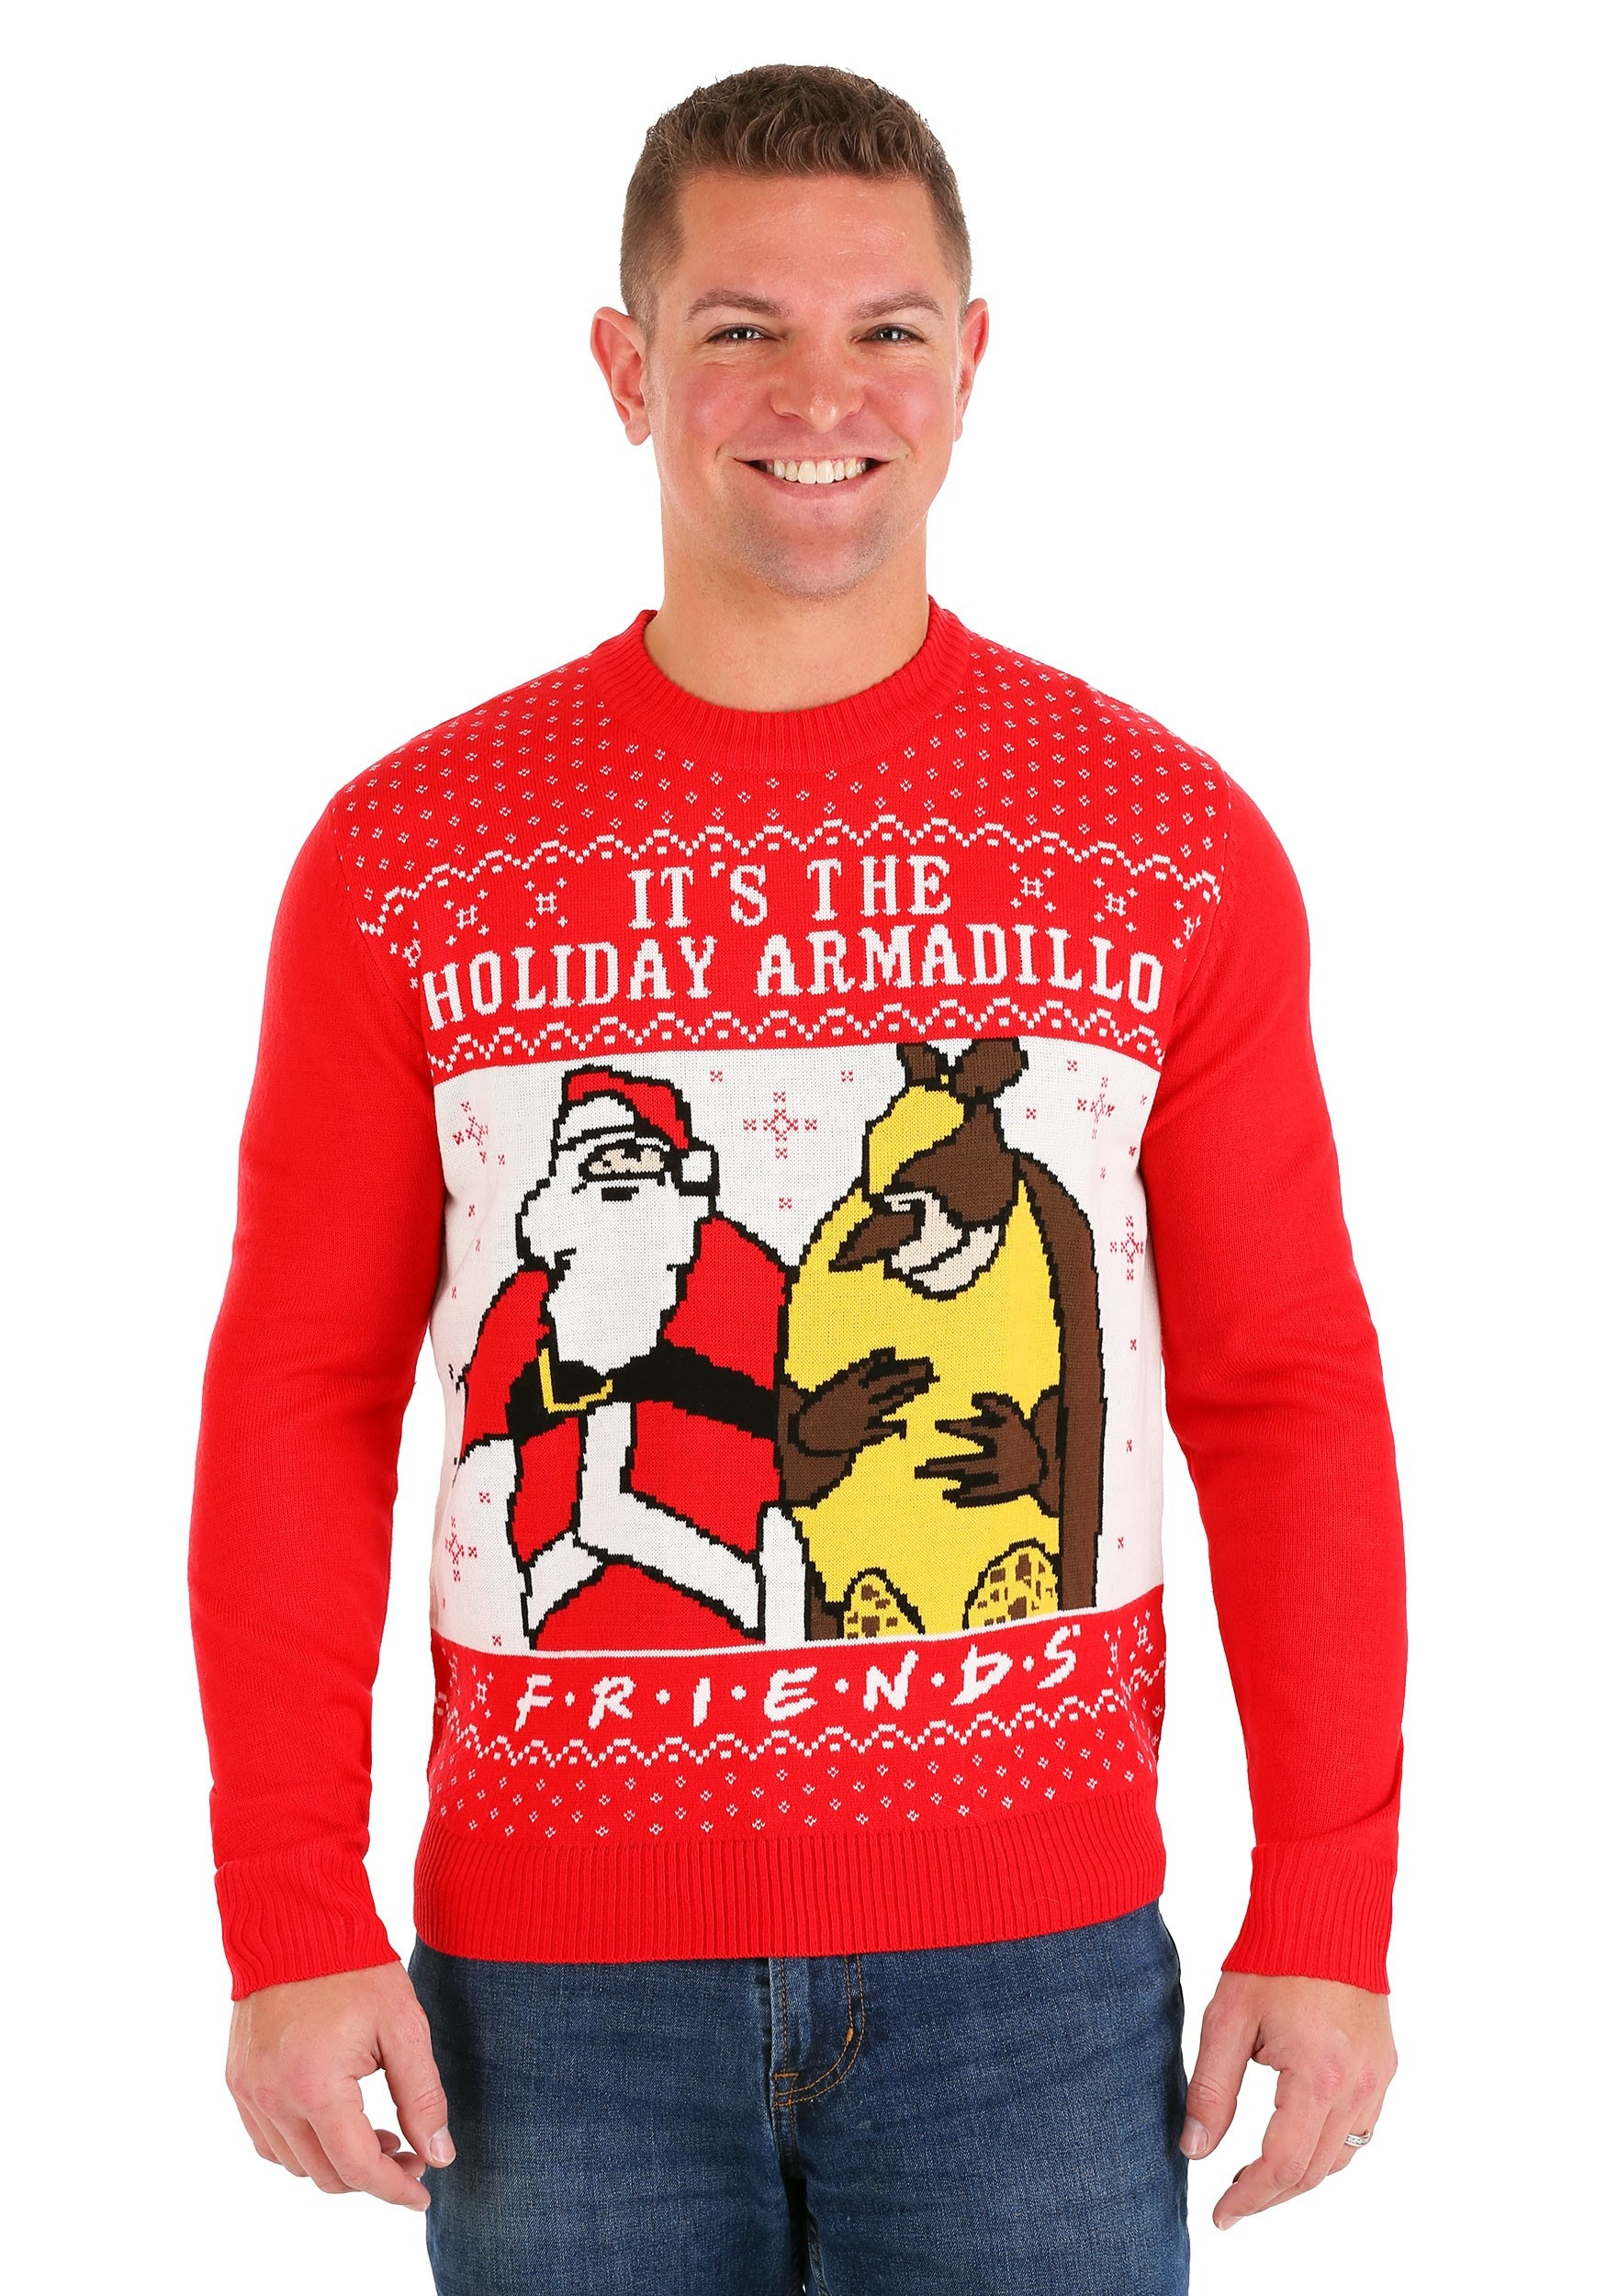 Friends It's the Holiday Armadillo! Ugly Christmas Sweater for Adults